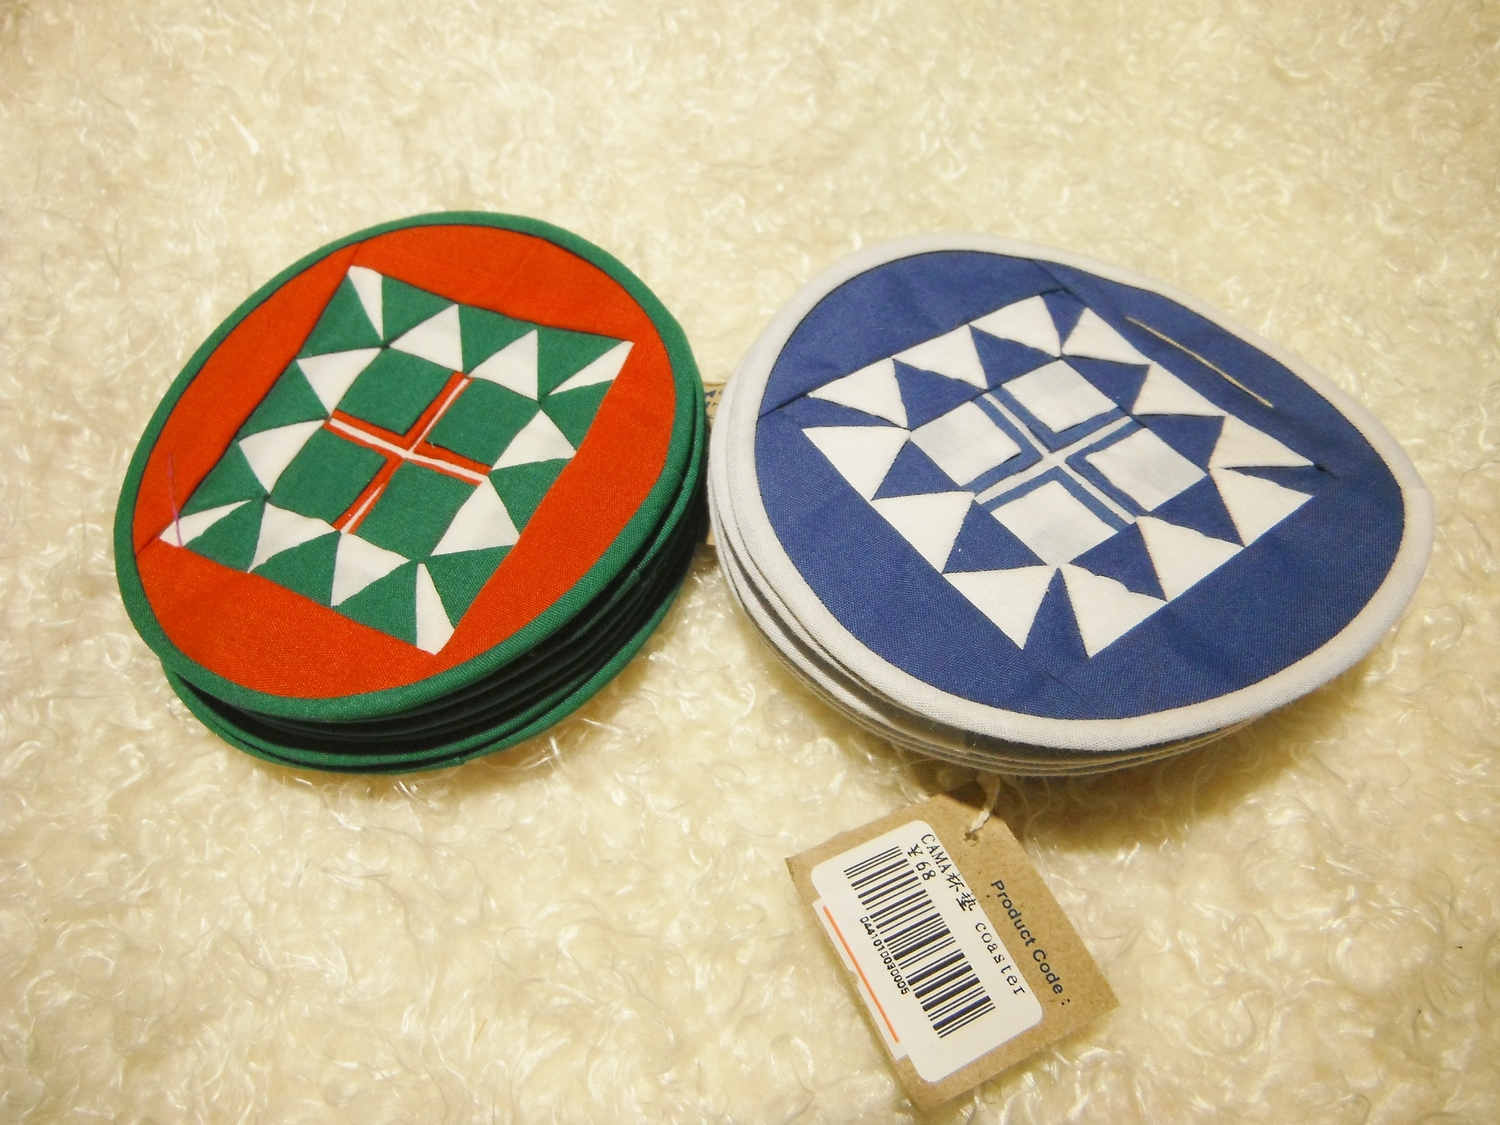 Camacraft Round Coasters